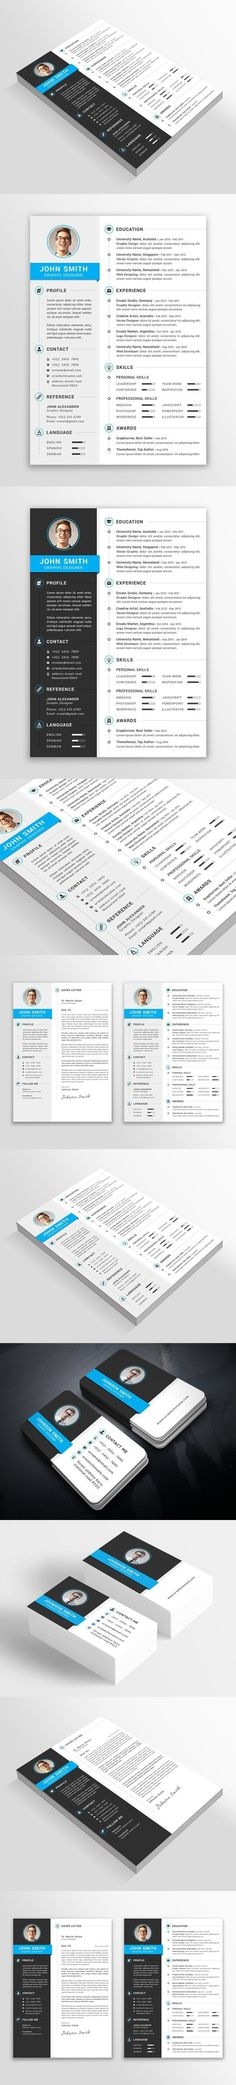 Resume CV Template Resume Templates Resume Templates - website resume template